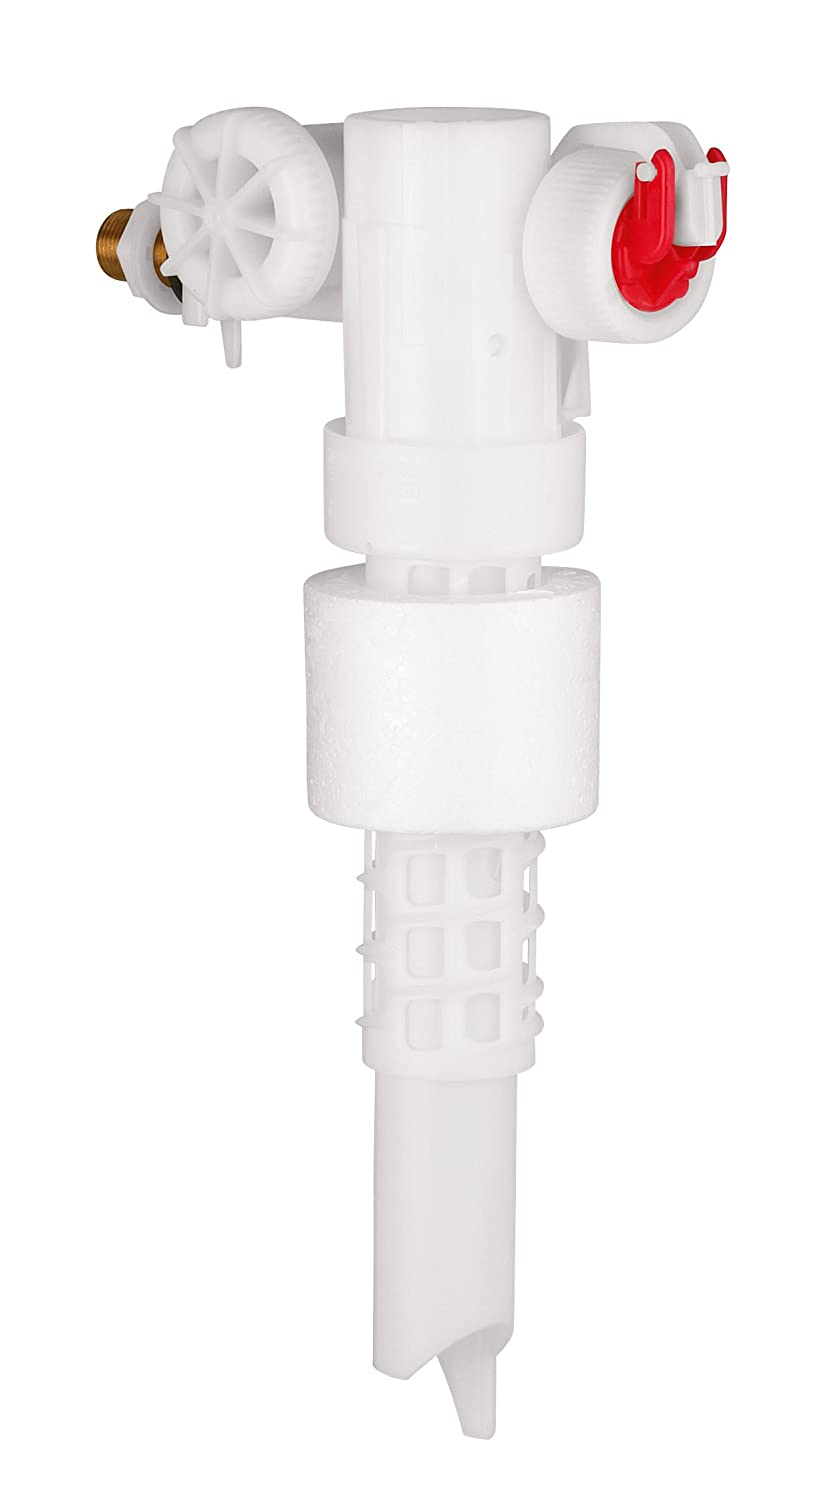 Grohe 37524000 - flushing mechanism float - spare part